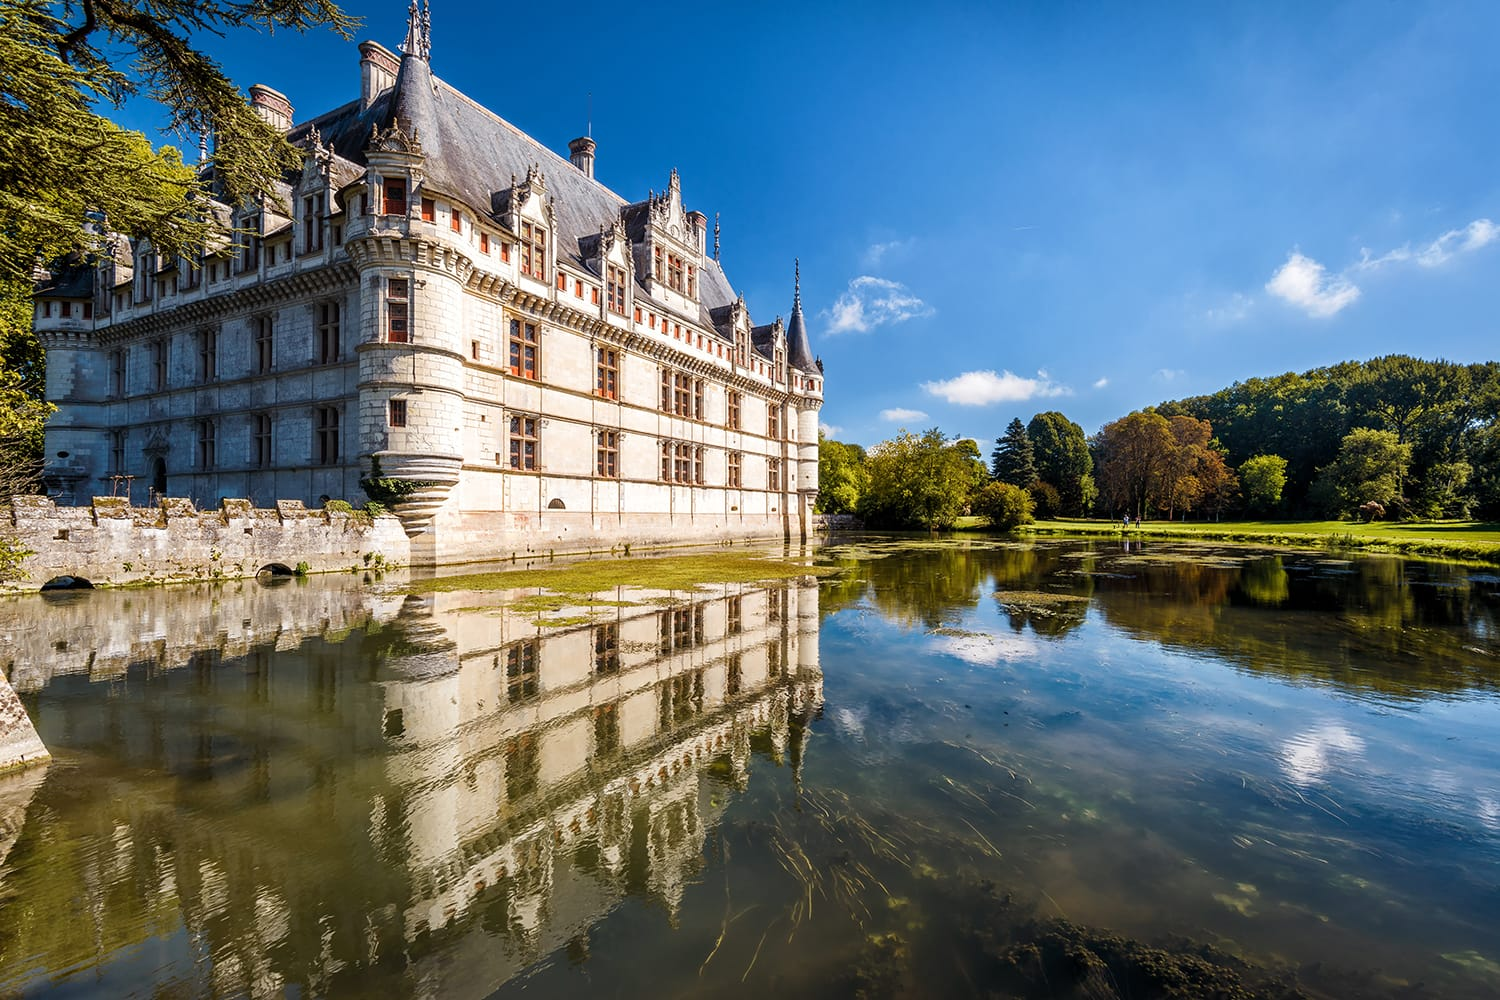 Chateau de Azay-le-Rideau in Loire Valley, France